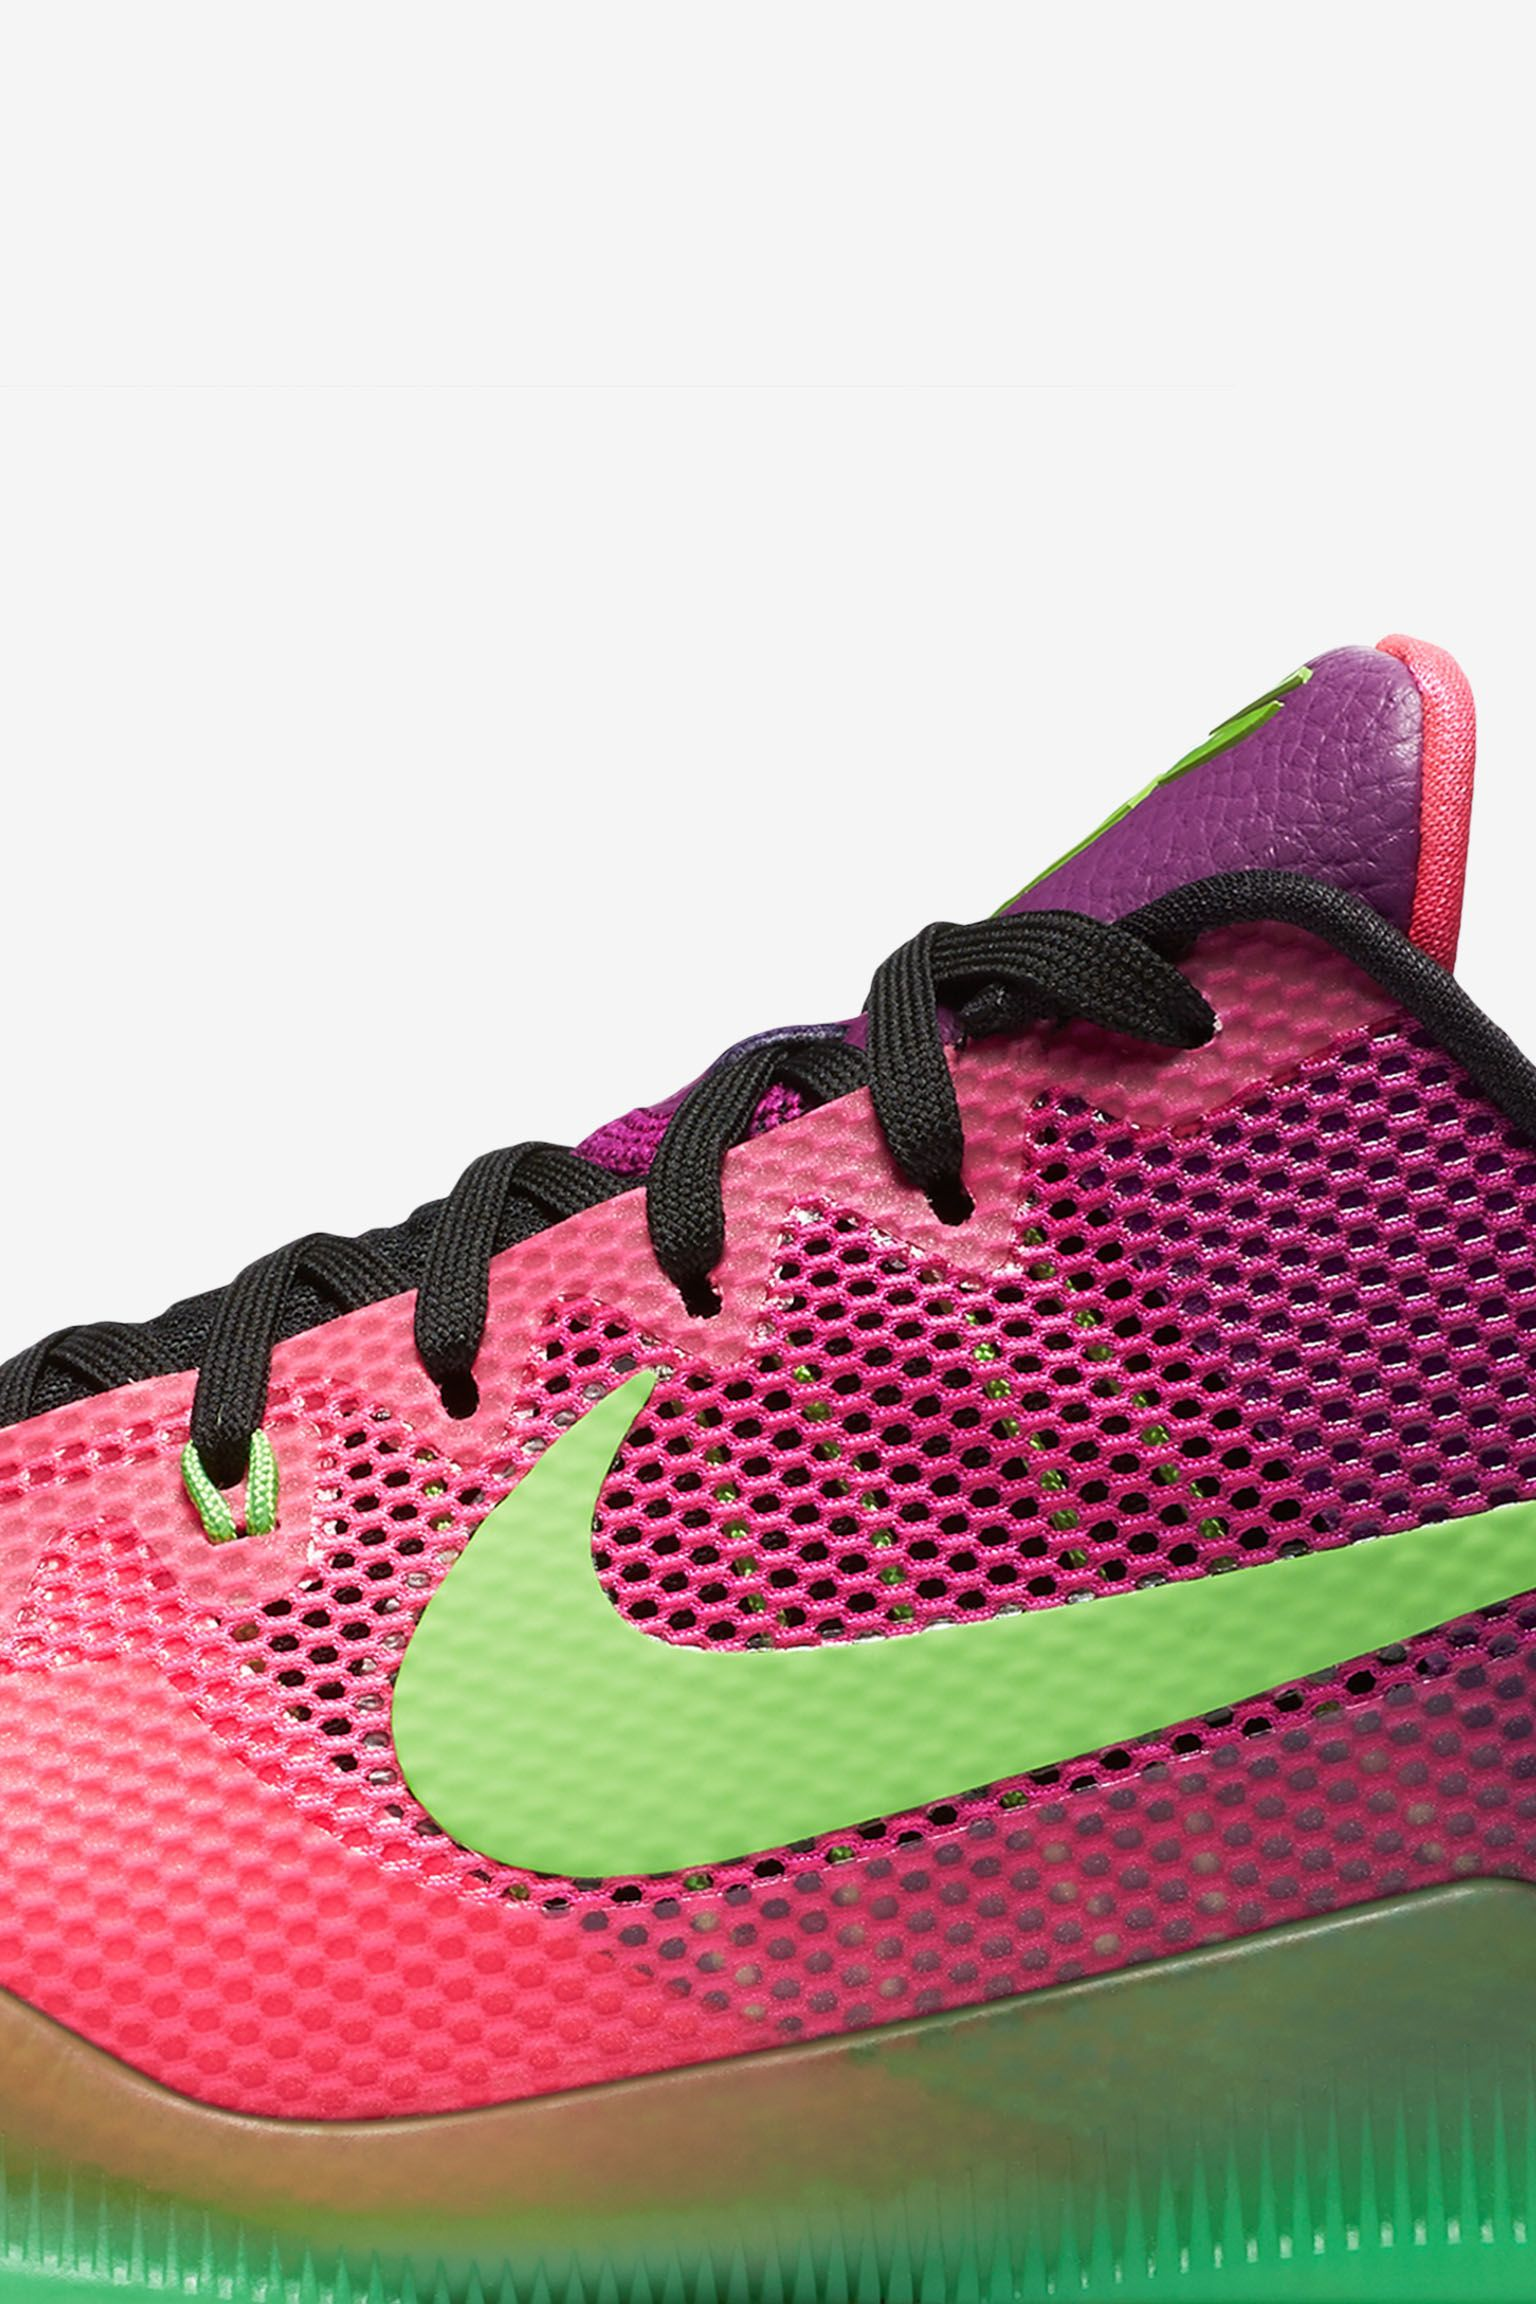 Nike Kobe 11 Mambacurial 'Pink Flash & Action Green' Release Date